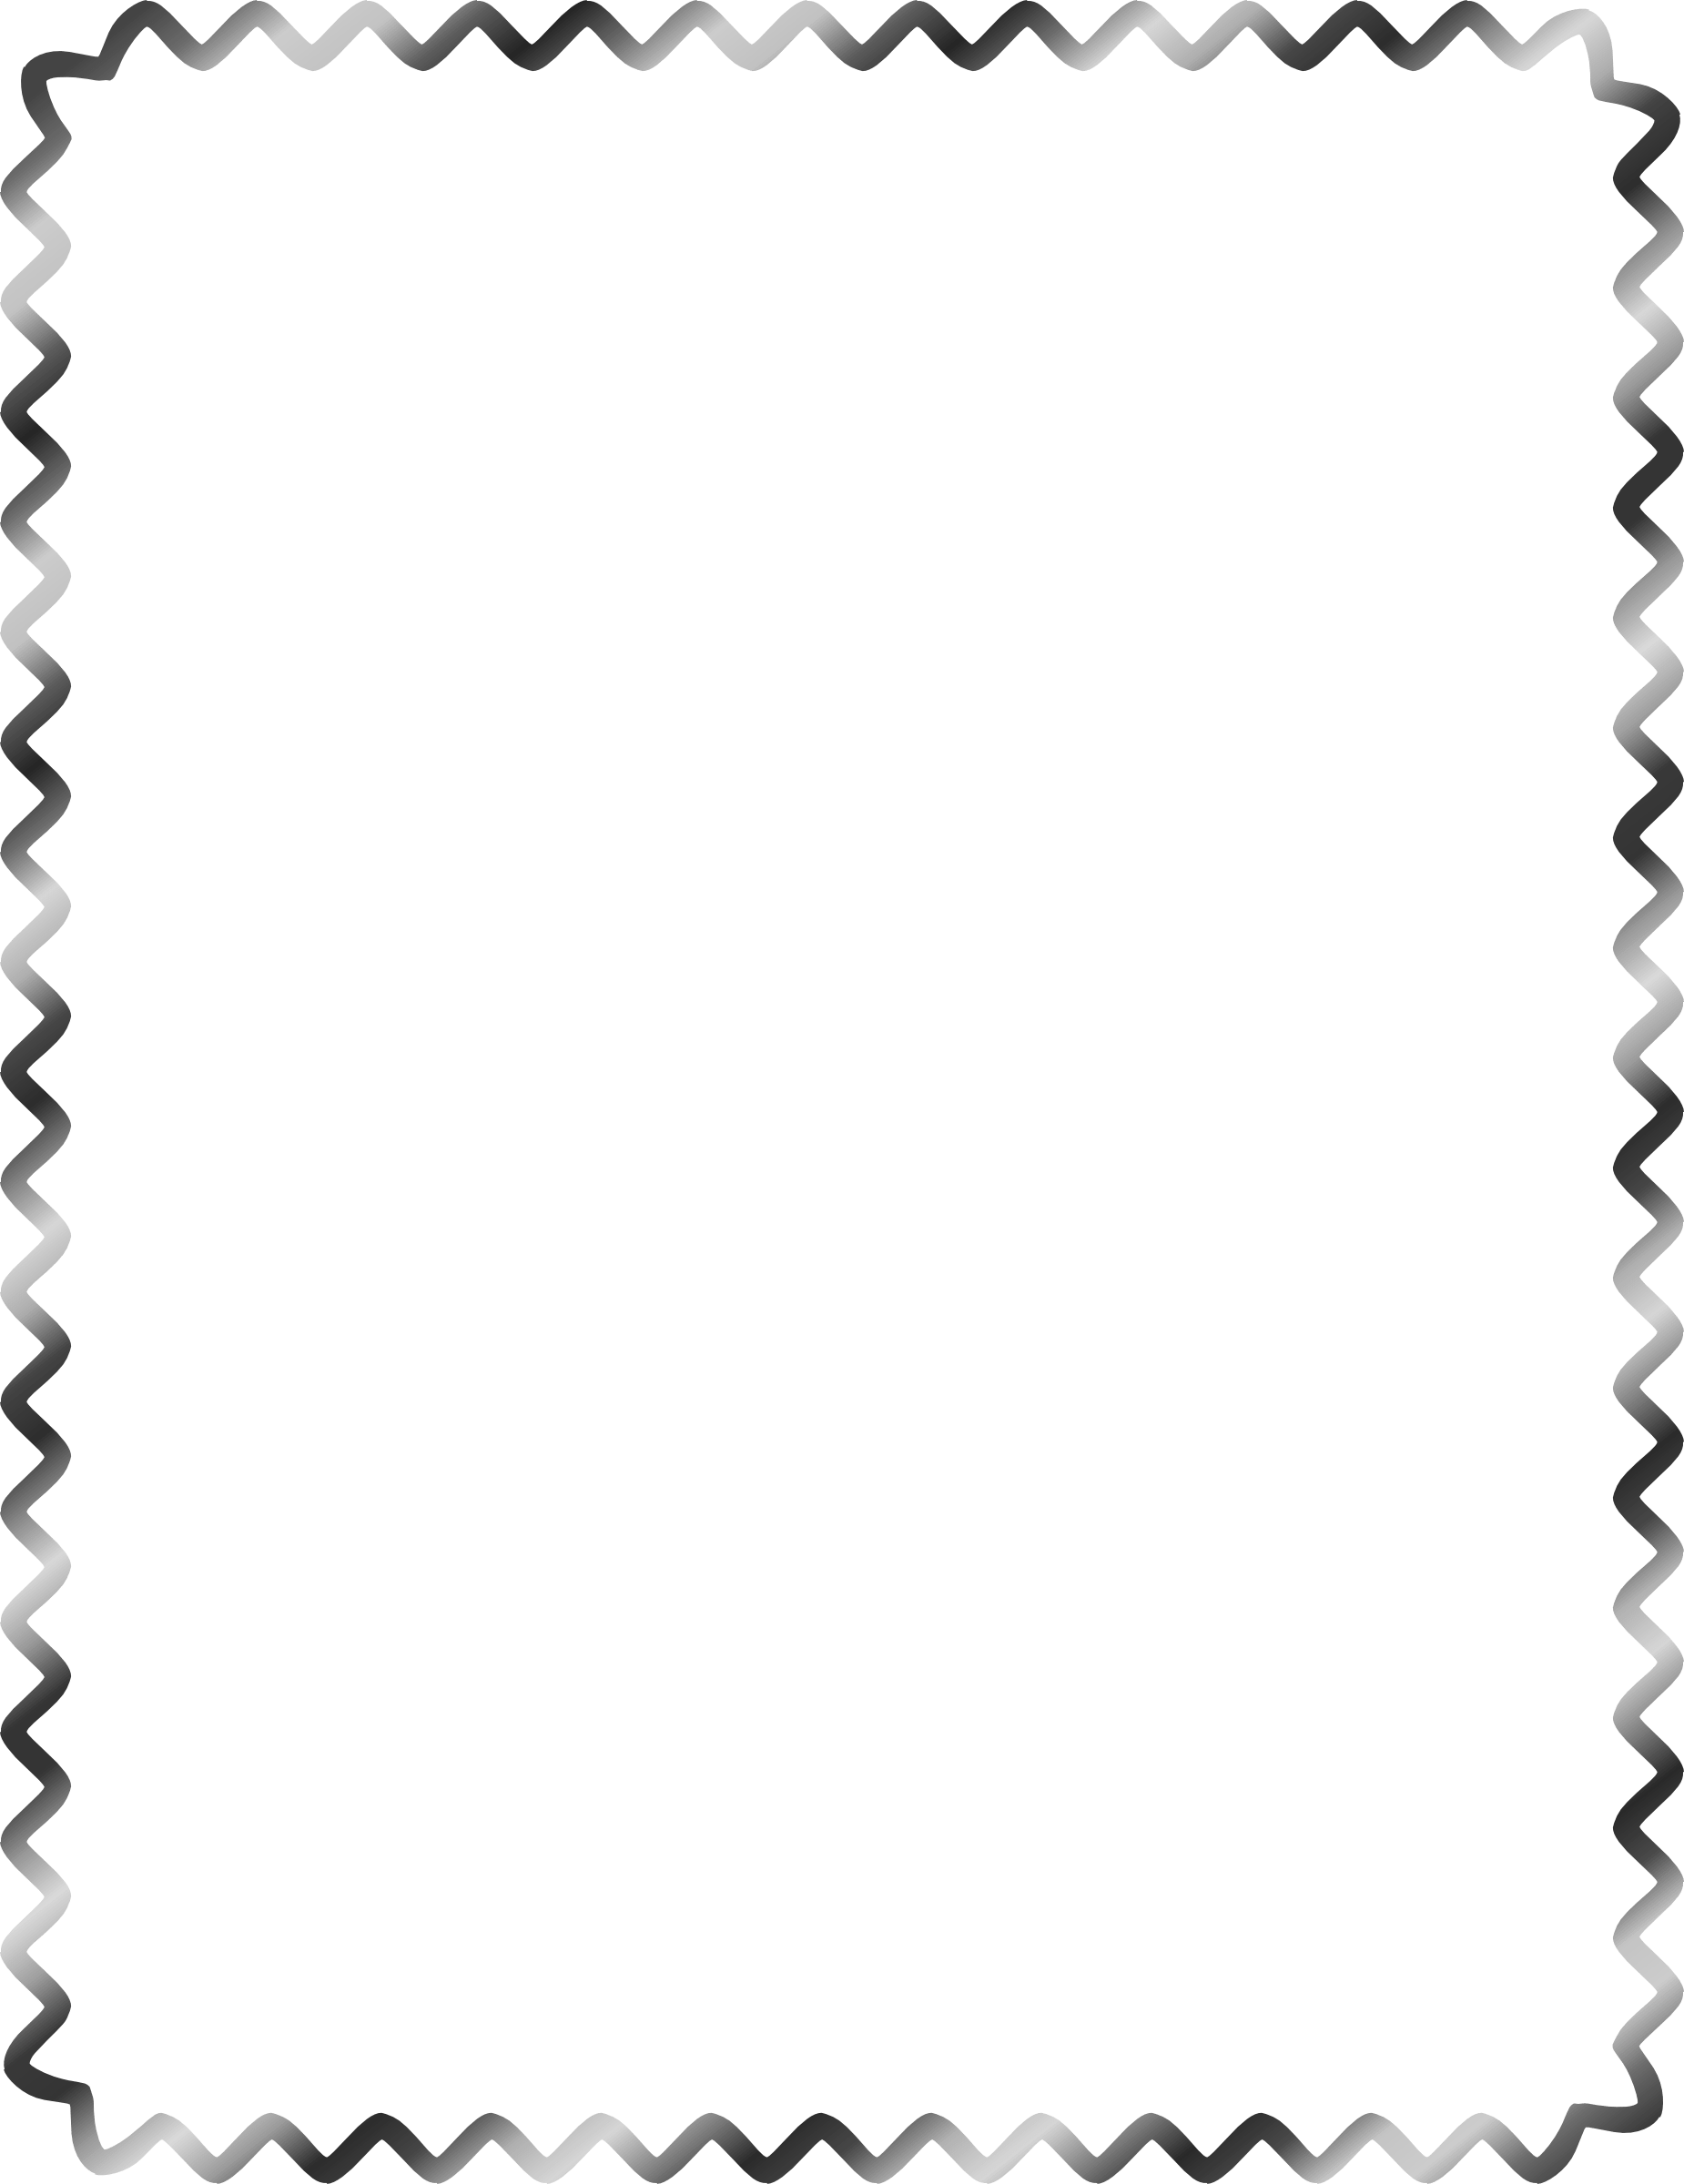 Squiggly line border clipart banner royalty free download Squiggly line border clipart 5 » Clipart Portal banner royalty free download